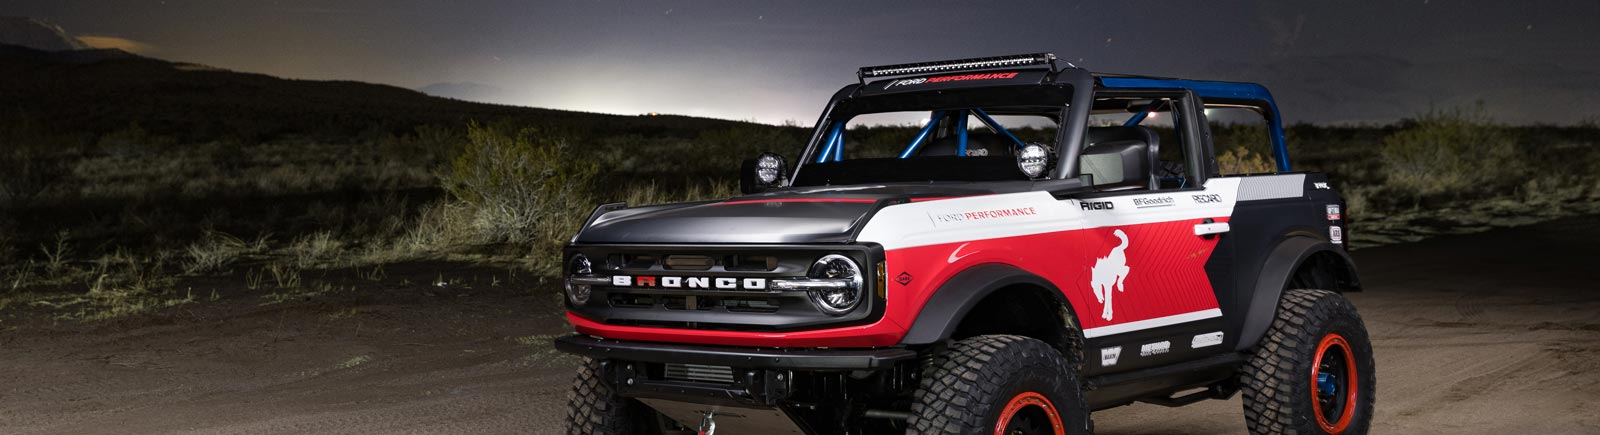 The 2021 Bronco & the ULTRA4 4600 Stock Class